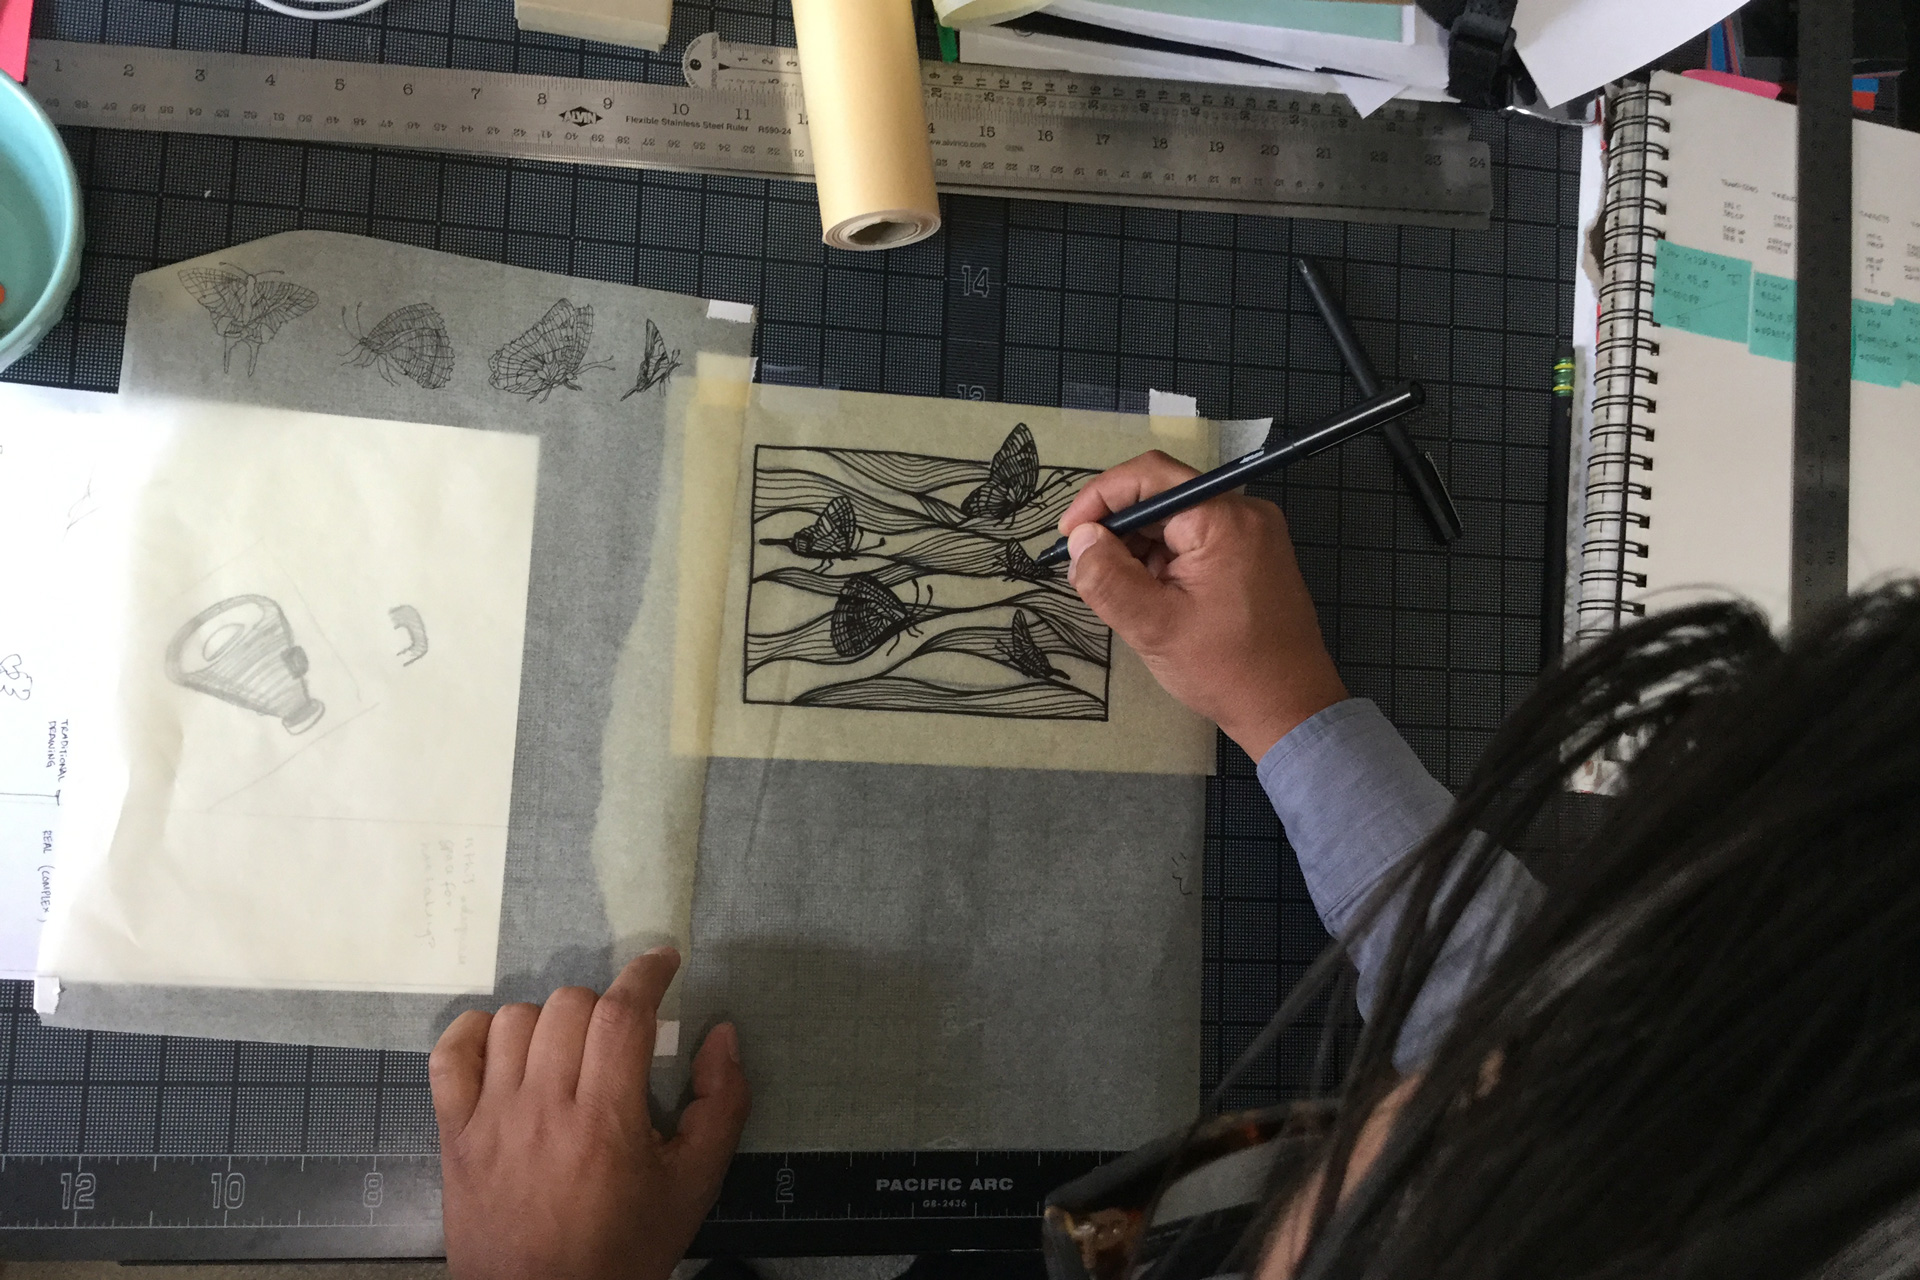 A man drawing waves and butterflies on a piece of tracing paper atop a black gridded mat